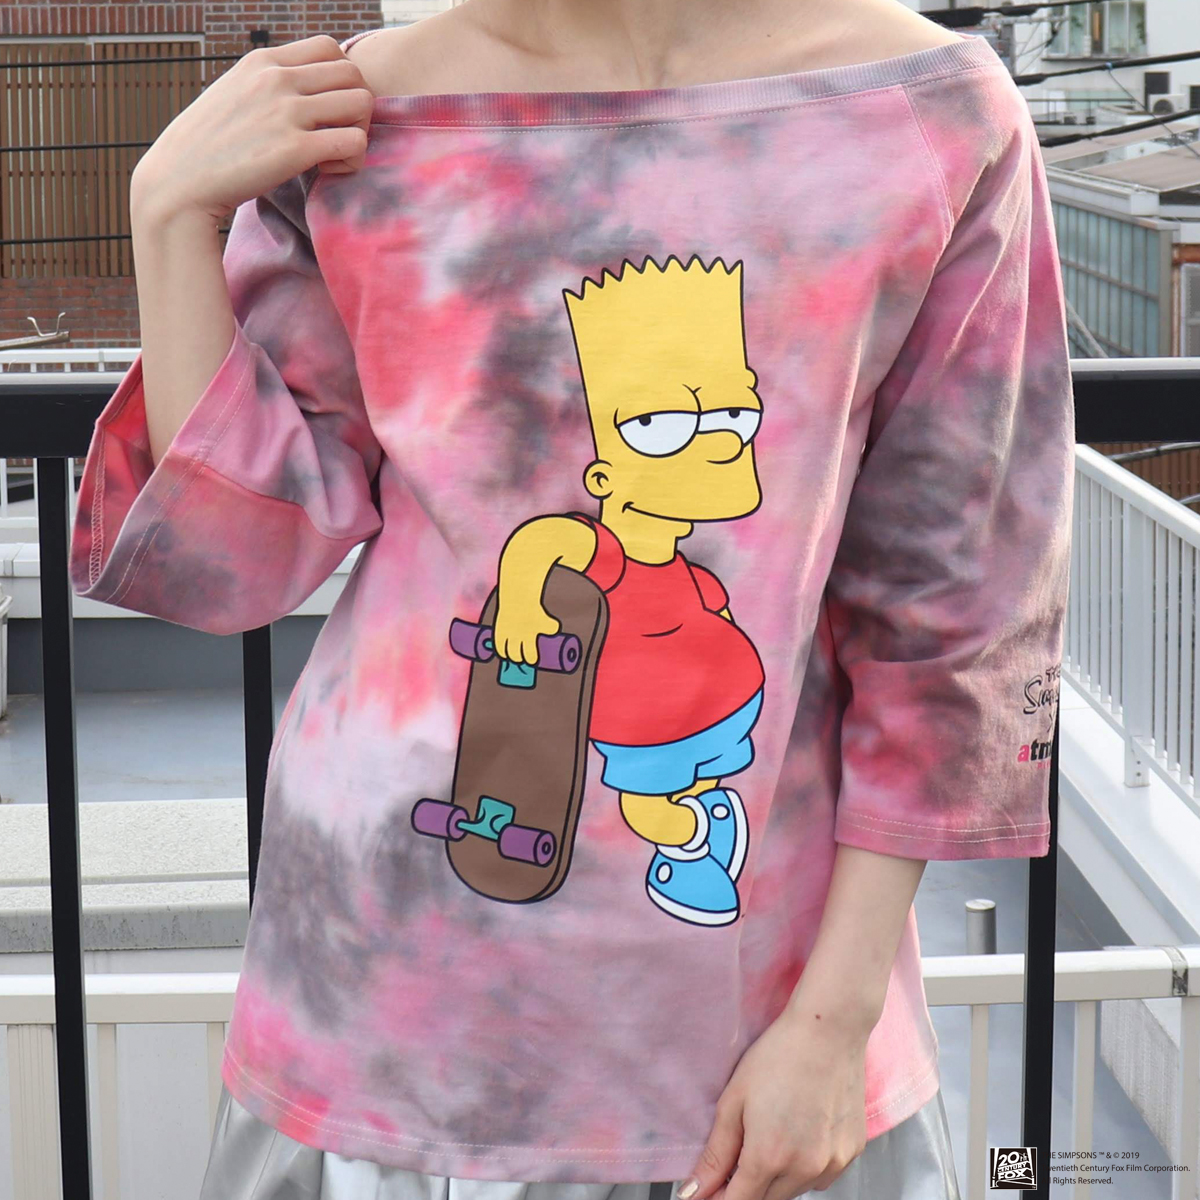 The Simpsons x atmos pink ワンショル タイダイ Tシャツ(シンプソンズ x アトモスピンク ワンショル タイダイ Tシャツ)PINK【レディース Tシャツ】19SP-S:atmos-tokyo